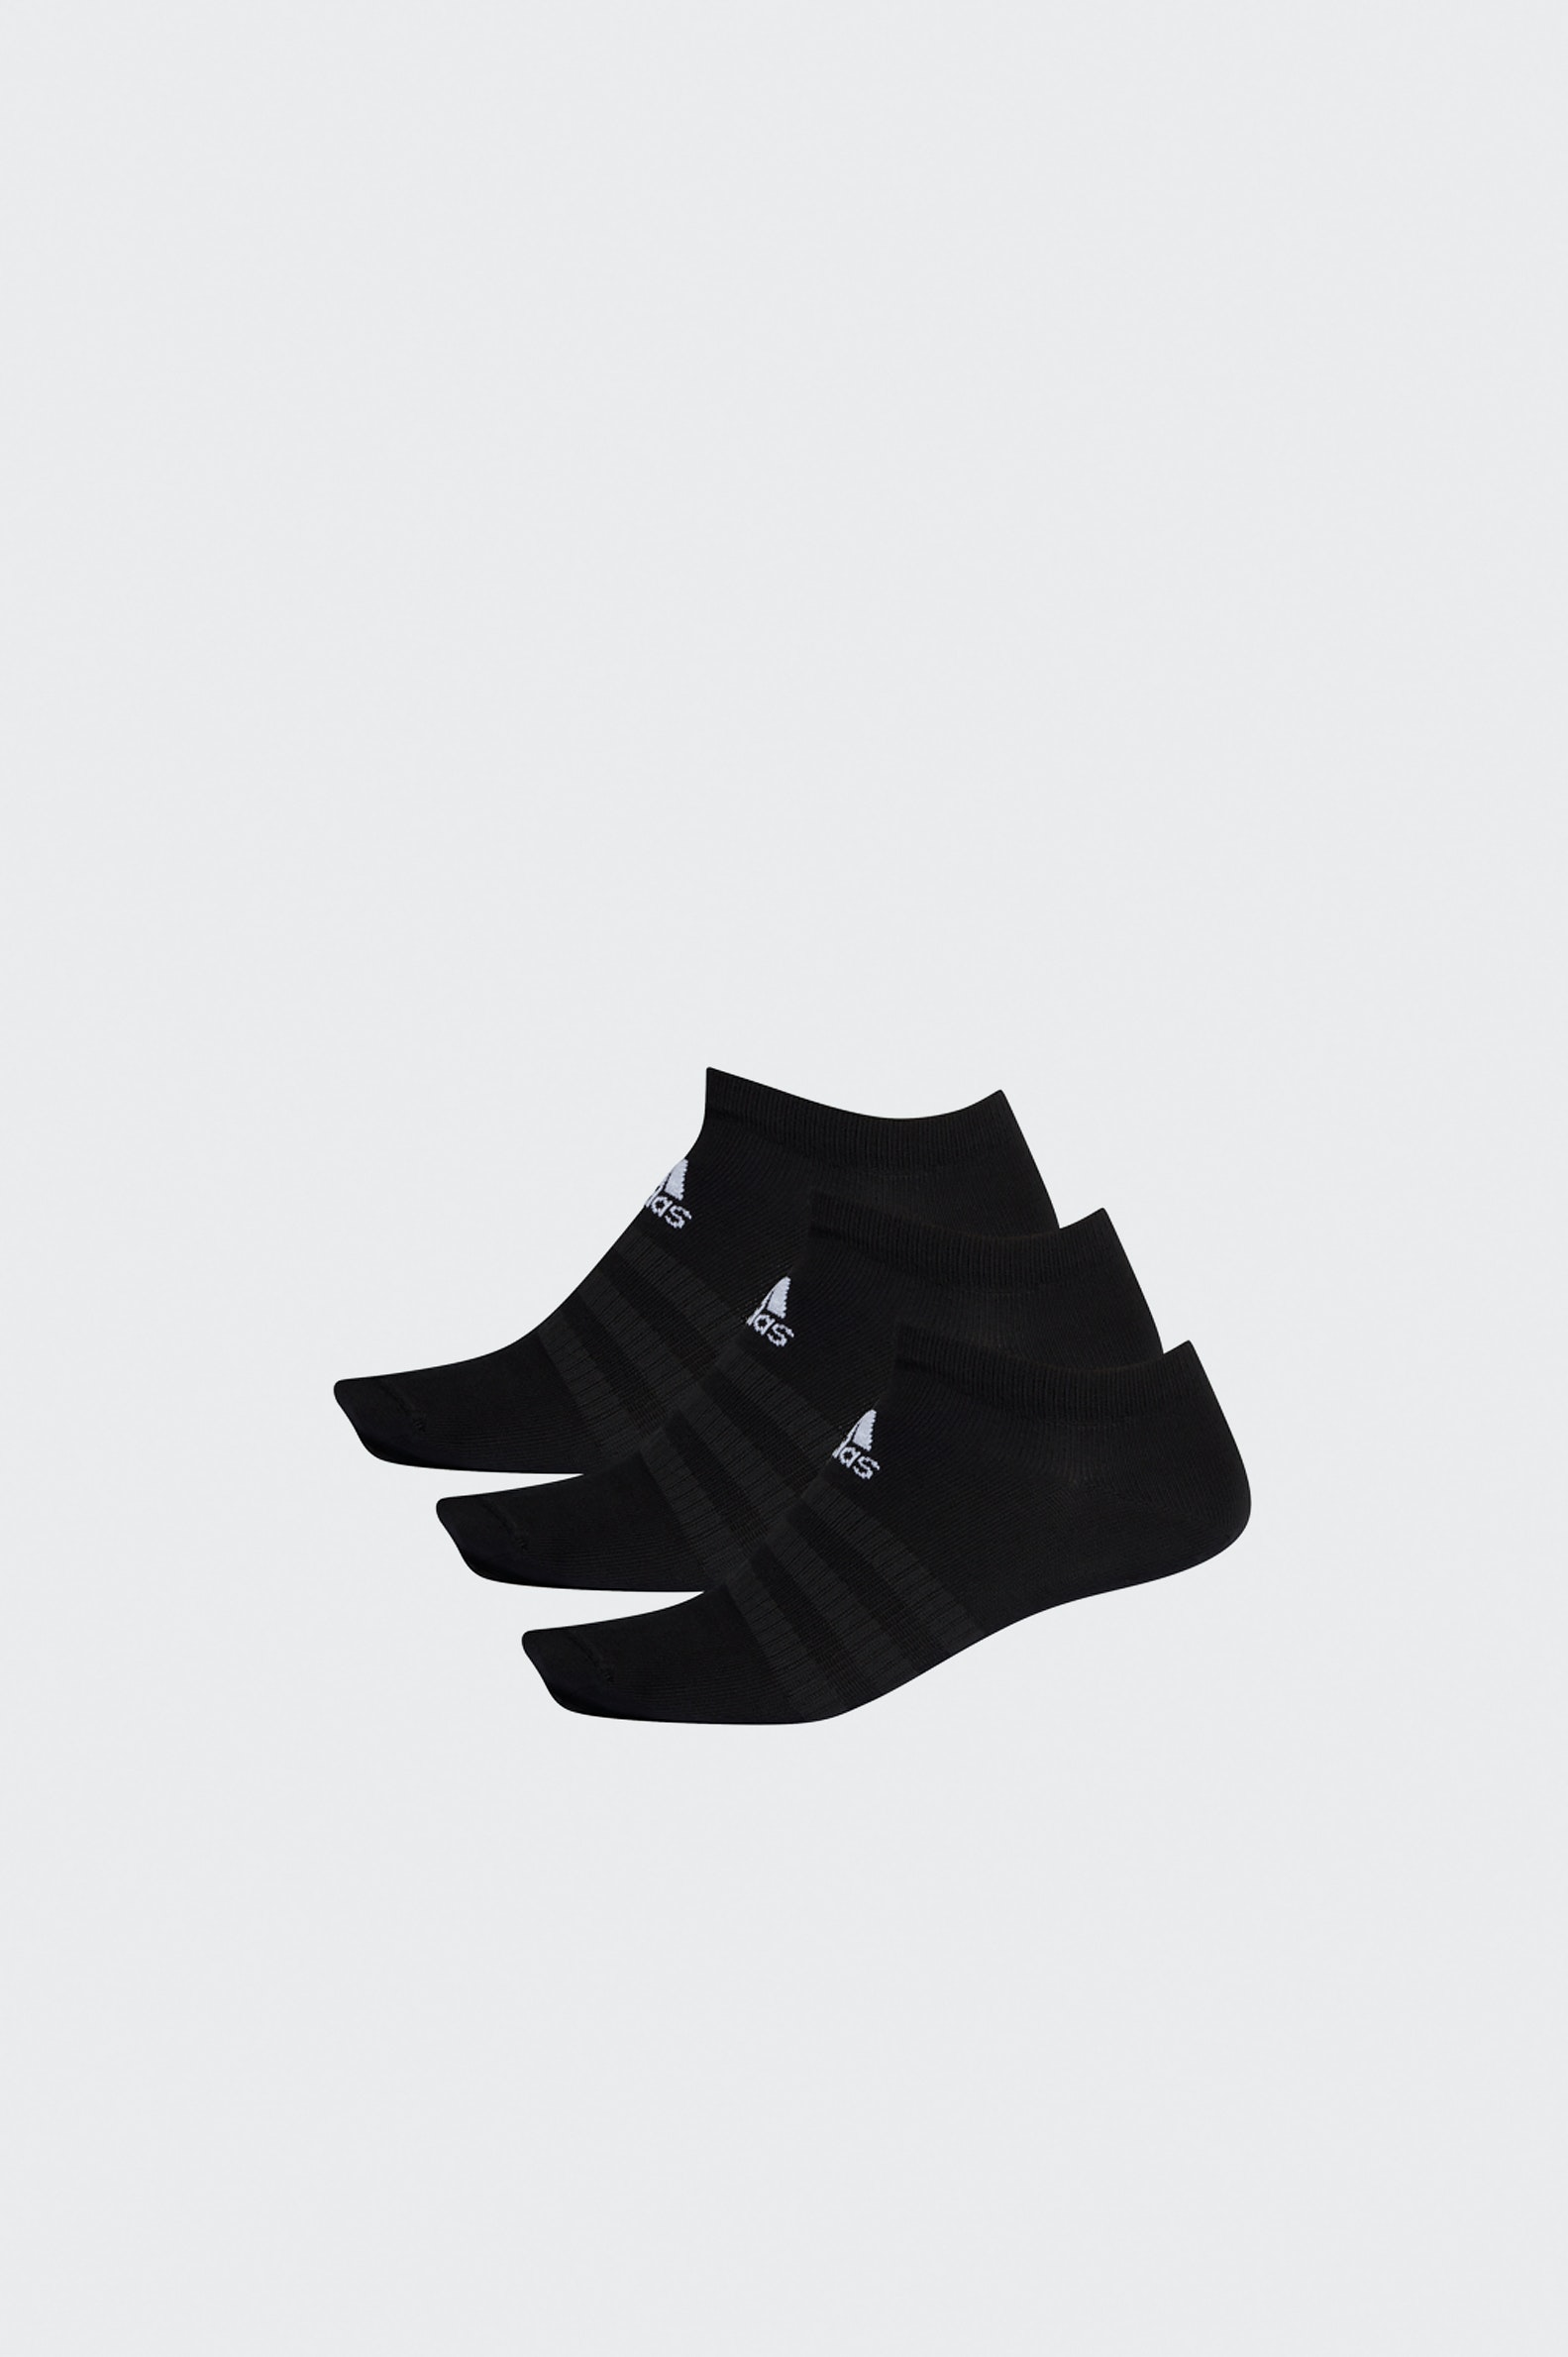 CHAUSSETTES MODE ADIDAS LOW HOMME